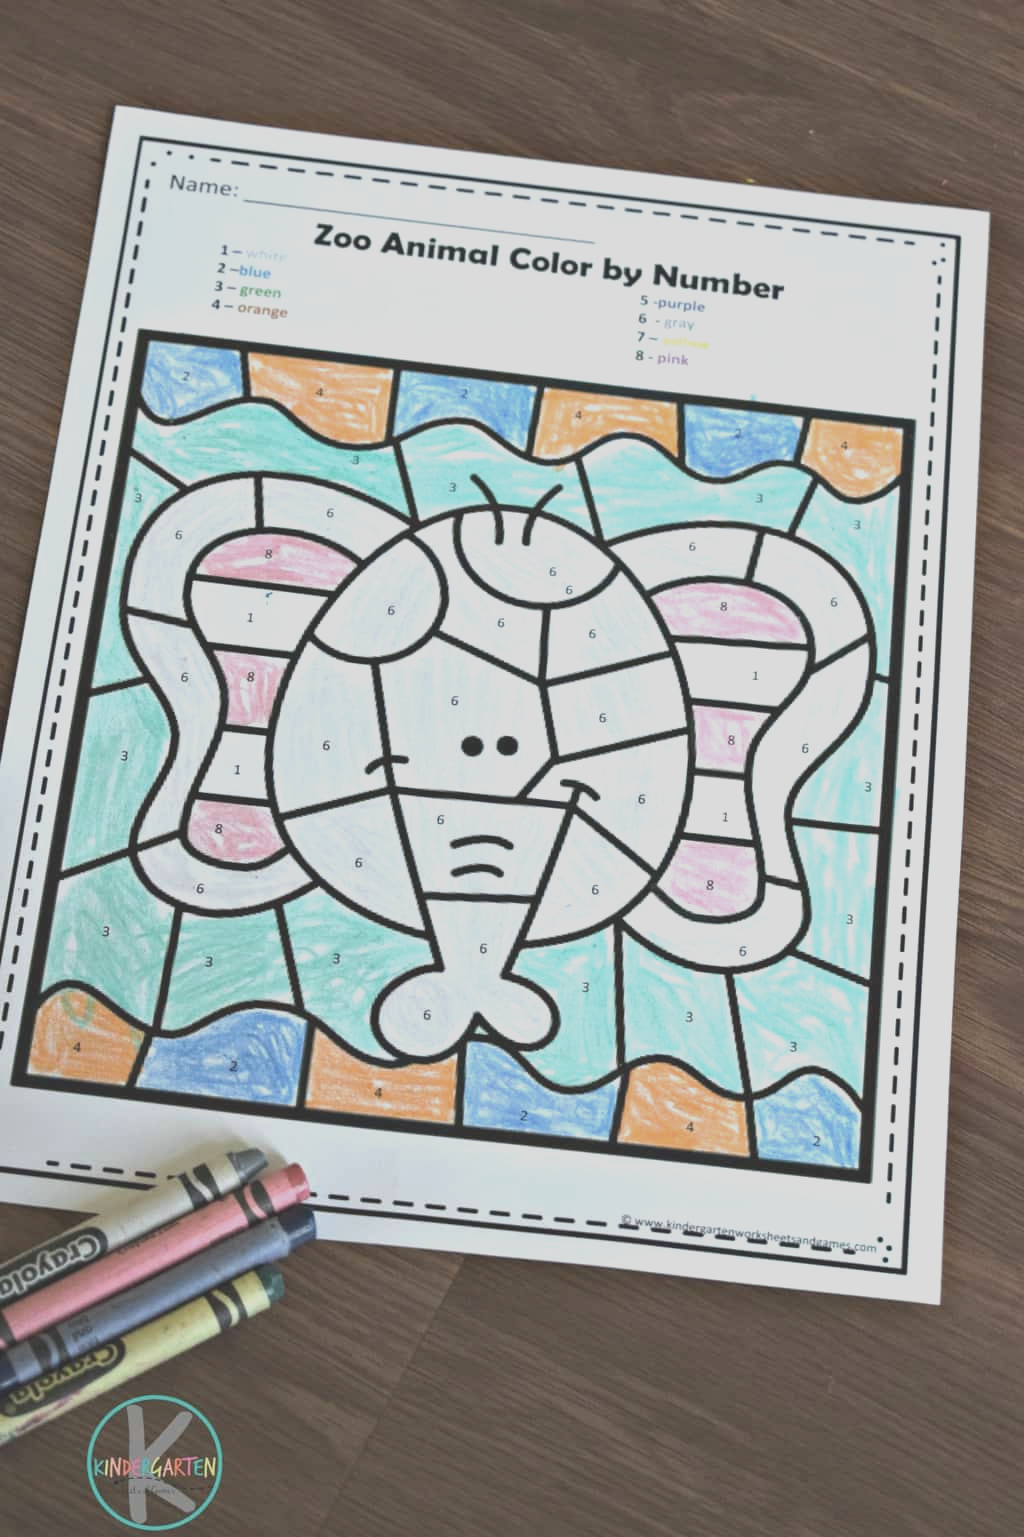 zoo animals color by number worksheets